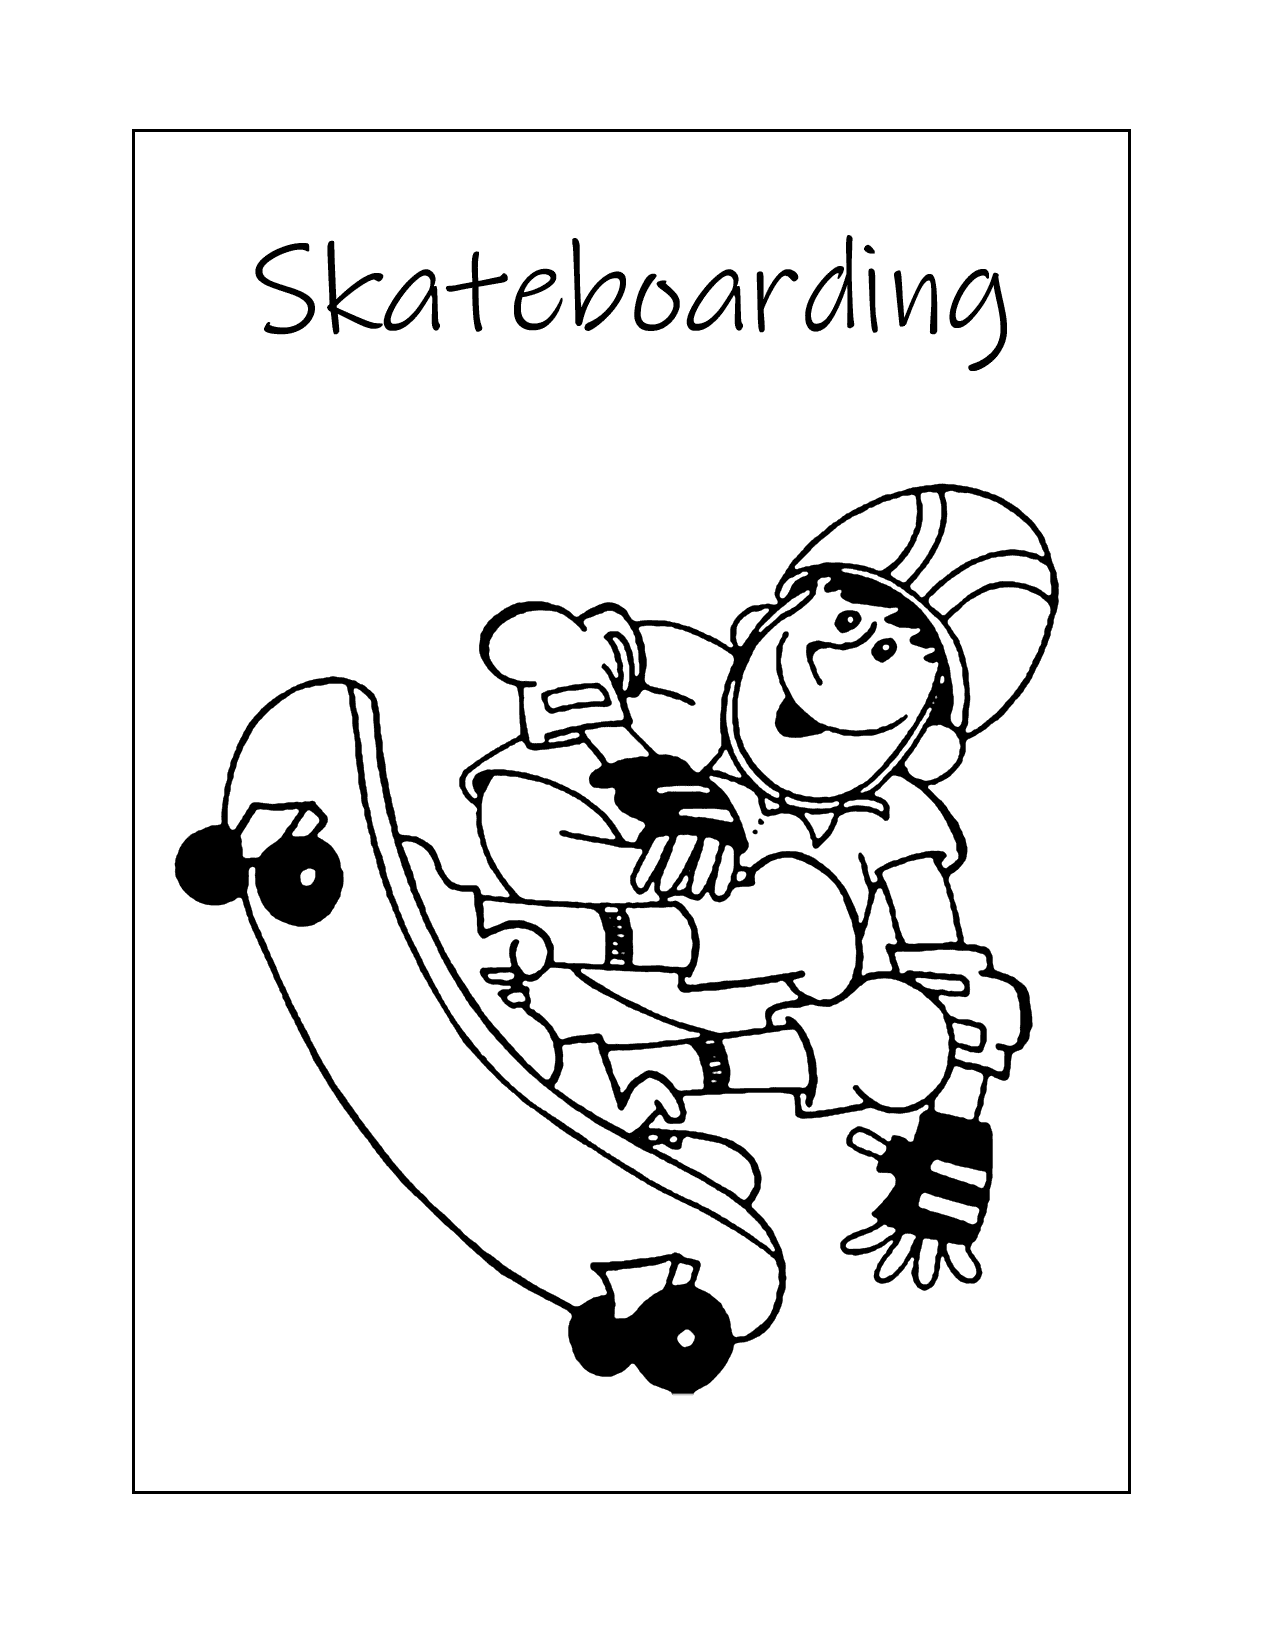 Skateboarding Coloring Page